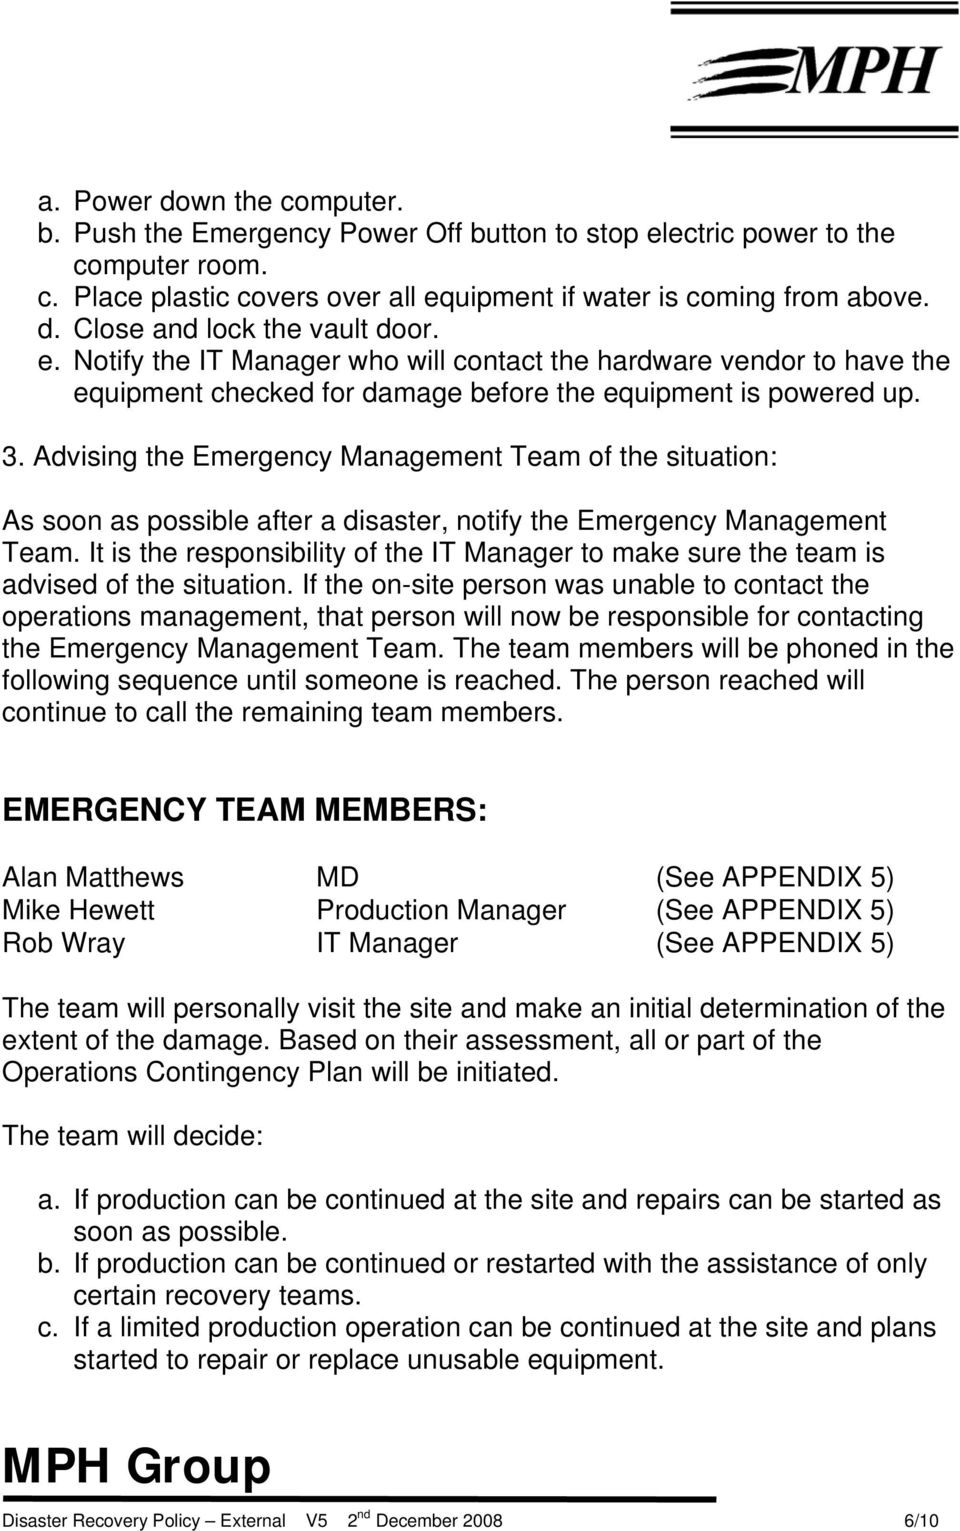 Advising the Emergency Management Team of the situation: As soon as possible after a disaster, notify the Emergency Management Team.